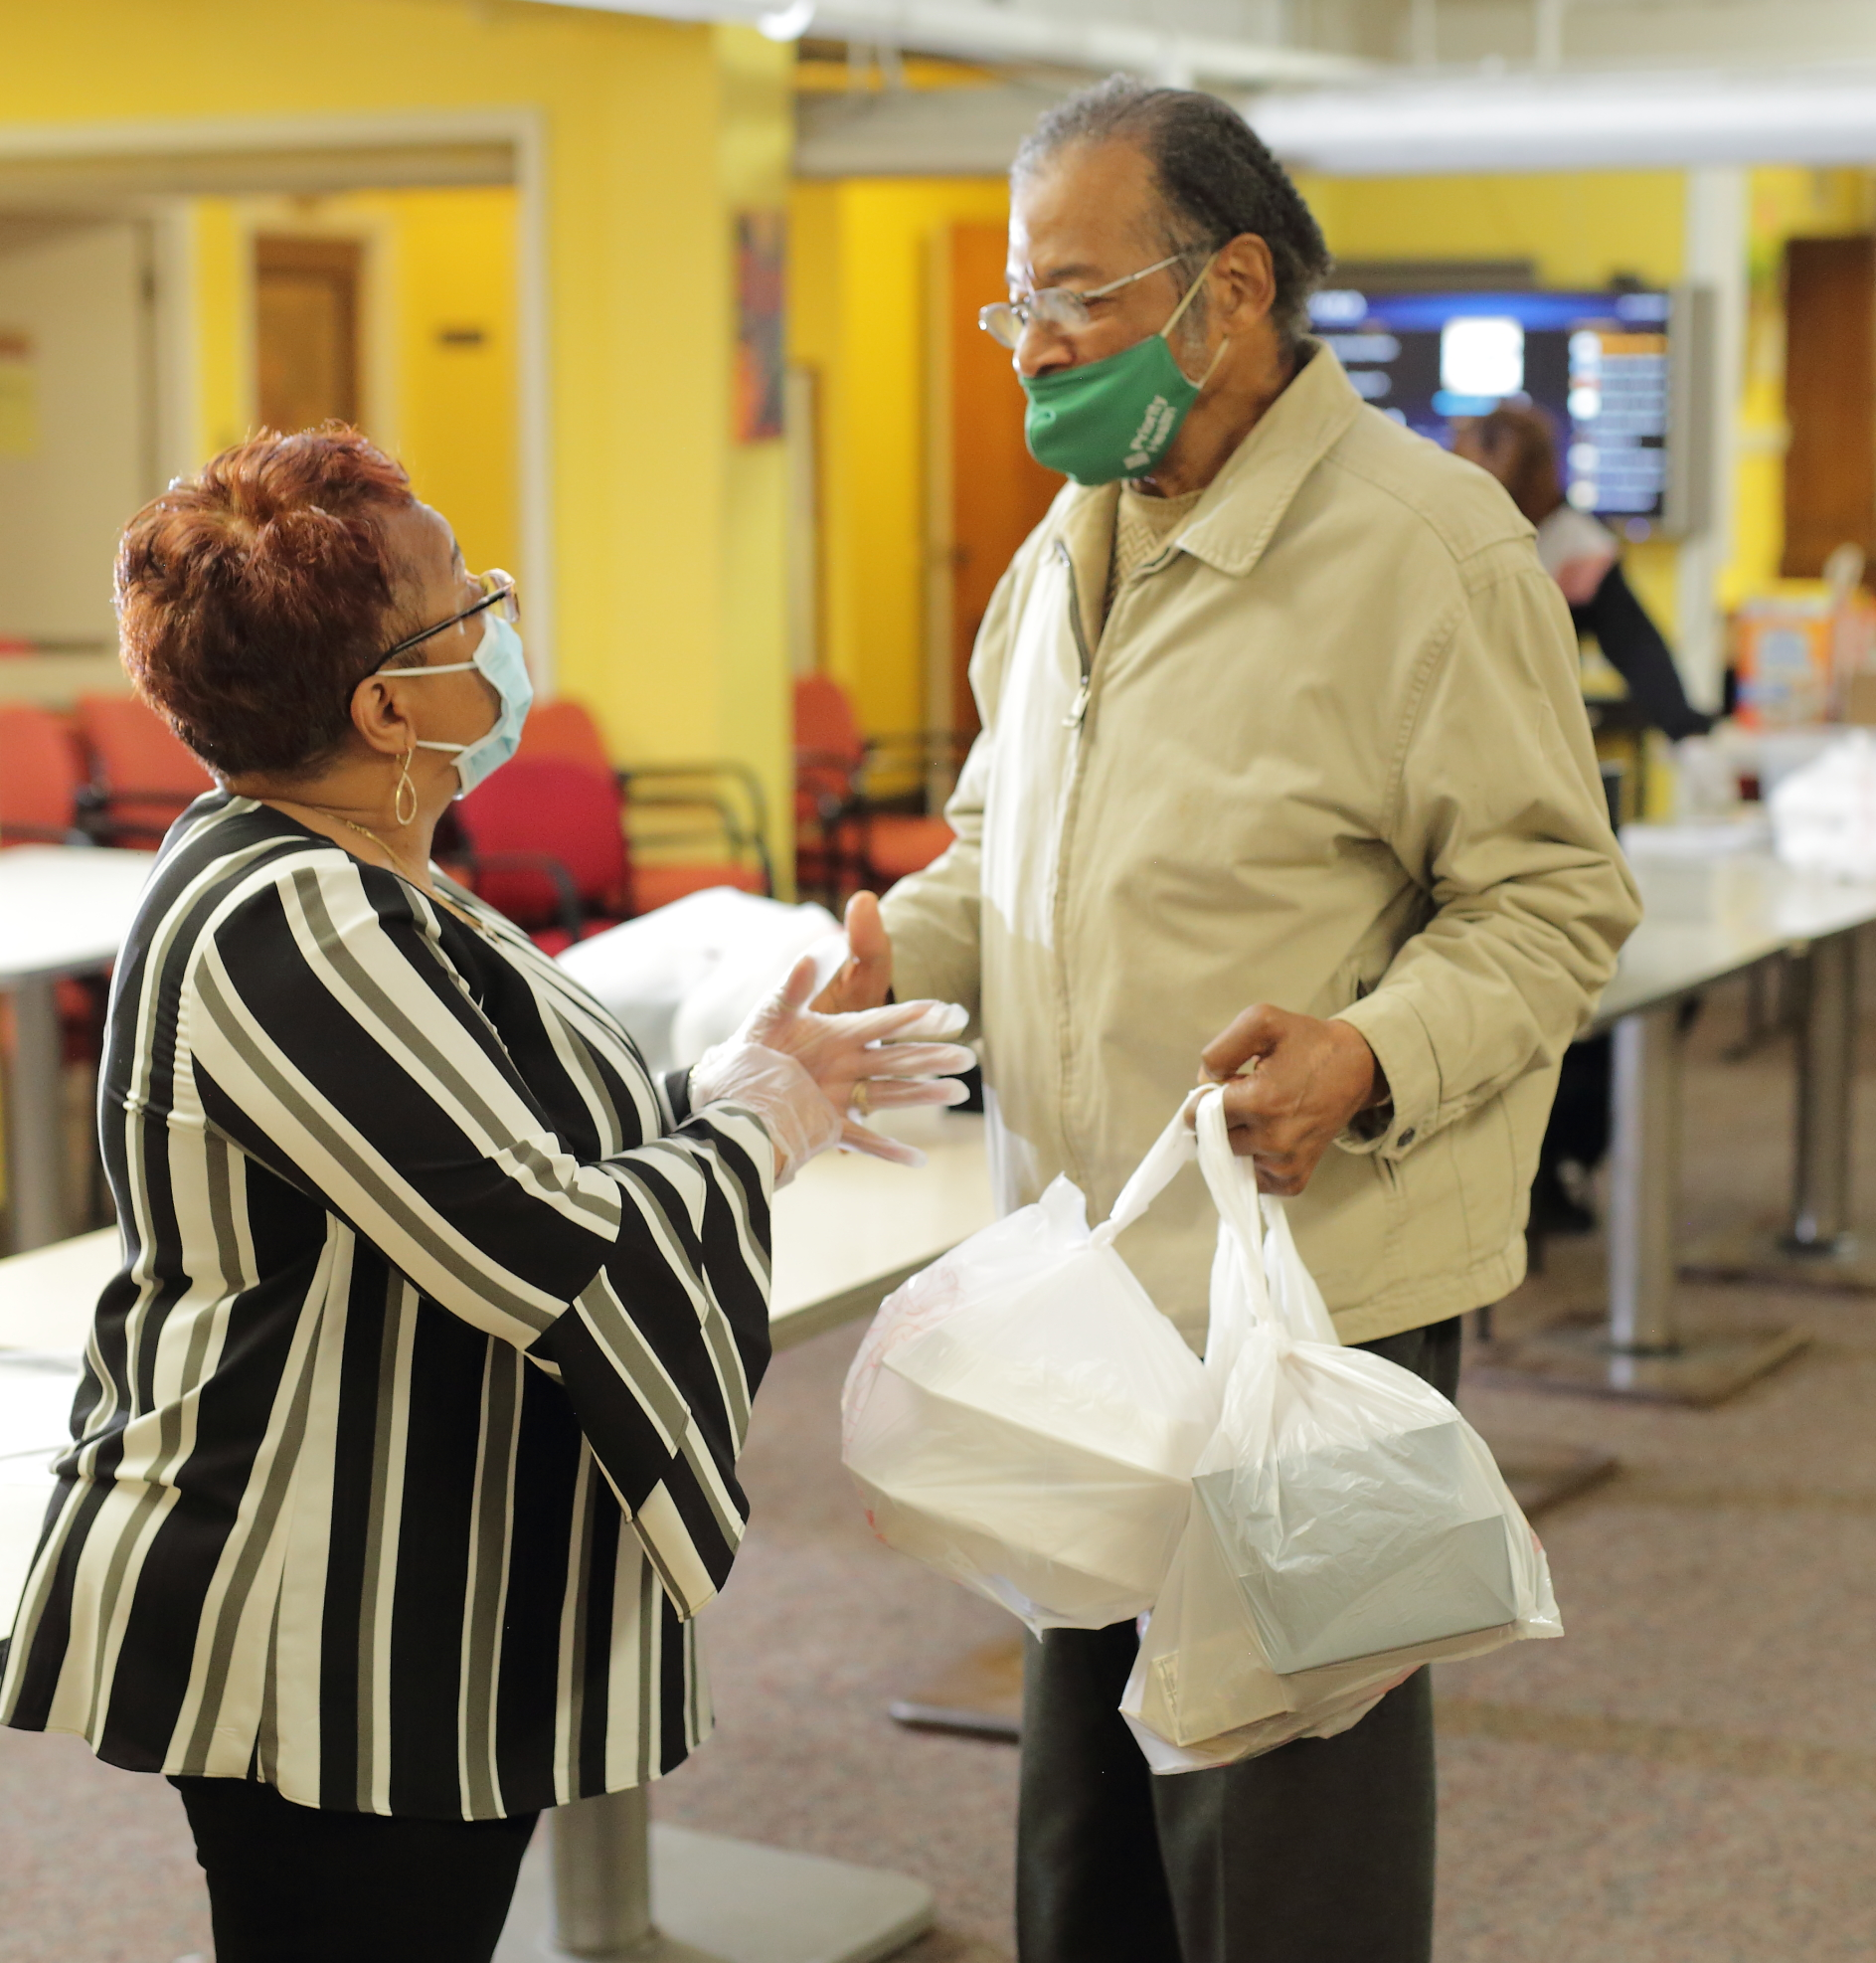 A woman talking to a man who is carrying multiple bags with food carryout containers